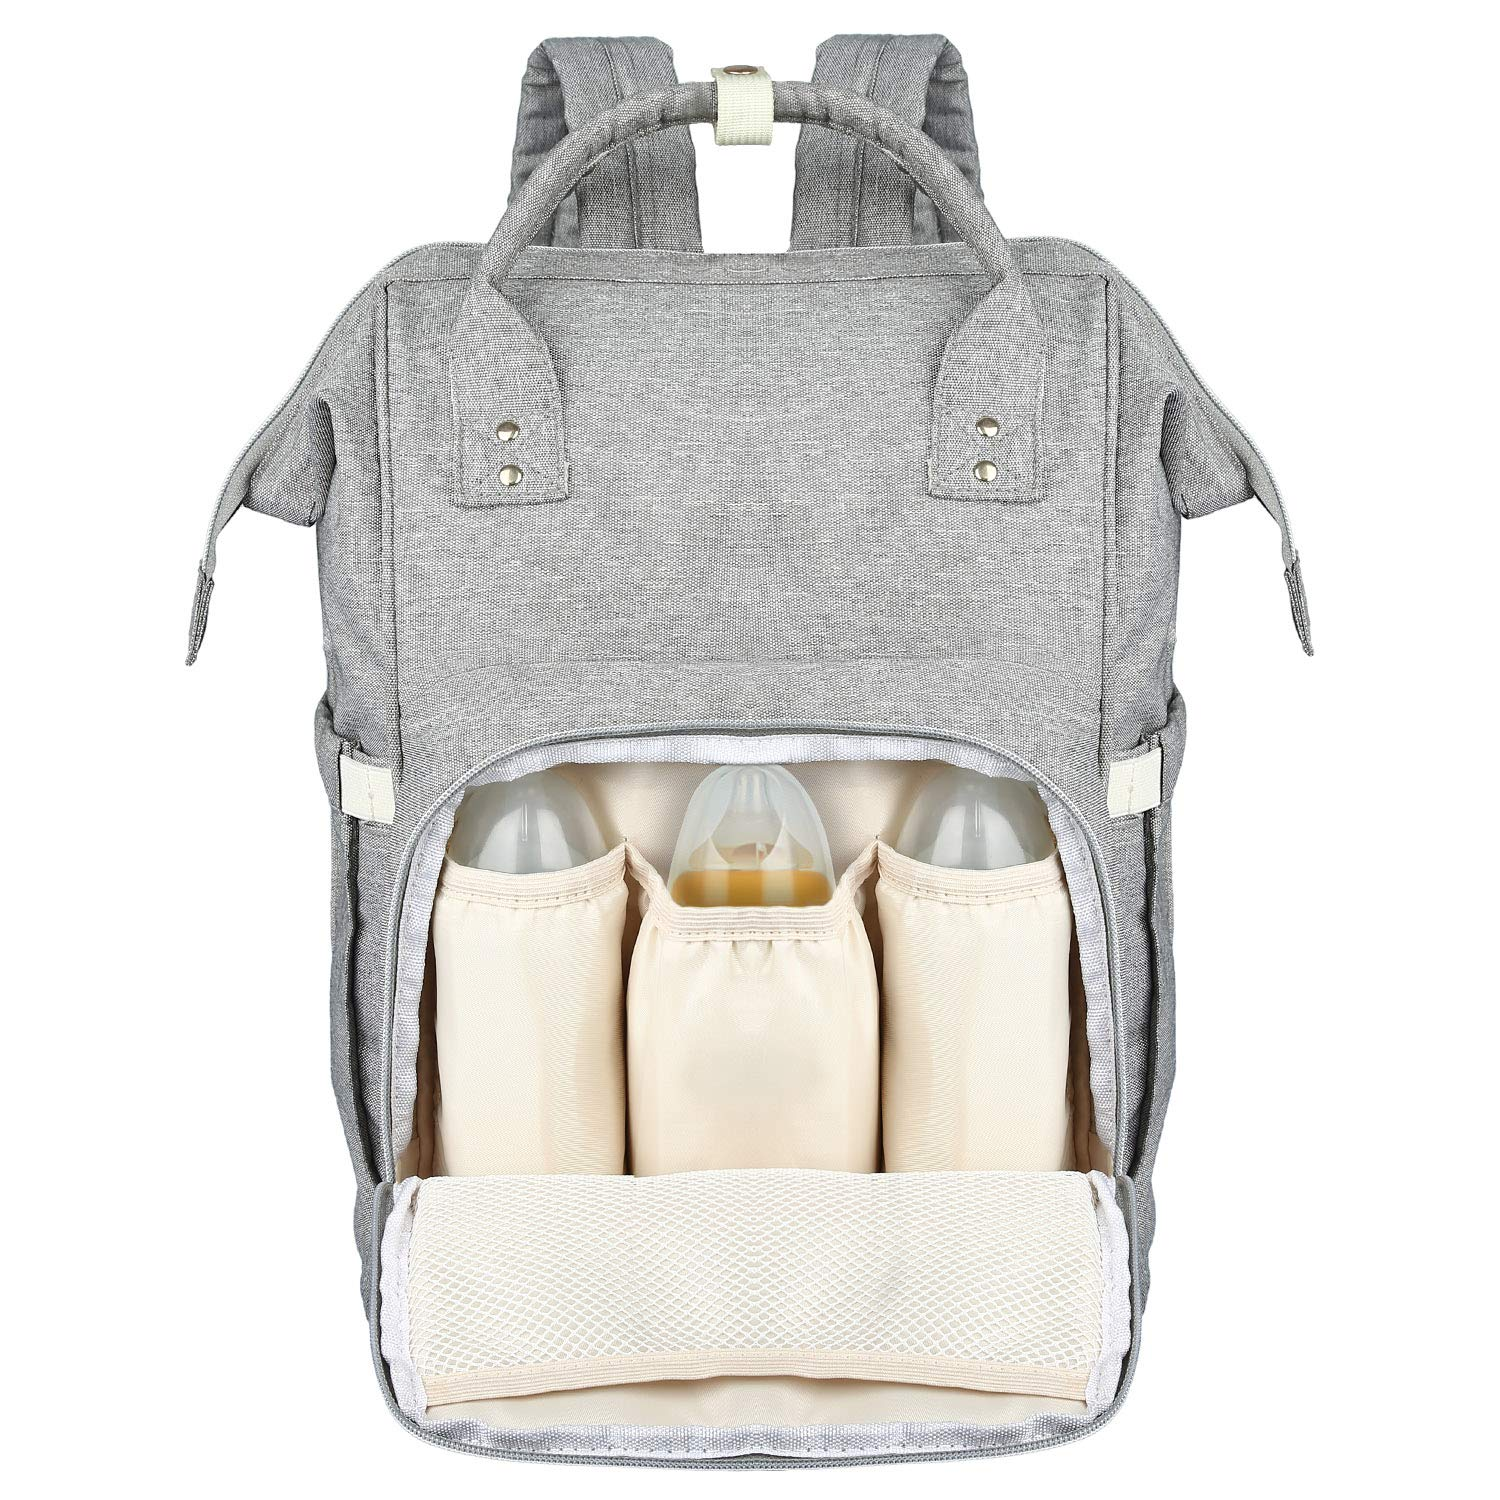 Good for One Or Two Babies LONENESSL Diaper Bag Backpack Large Diaper Bag//Mommy Bag with Multiple Pockets and Extra Large Capacity A-DB-US Gray Stores up to 8 oz Bottles